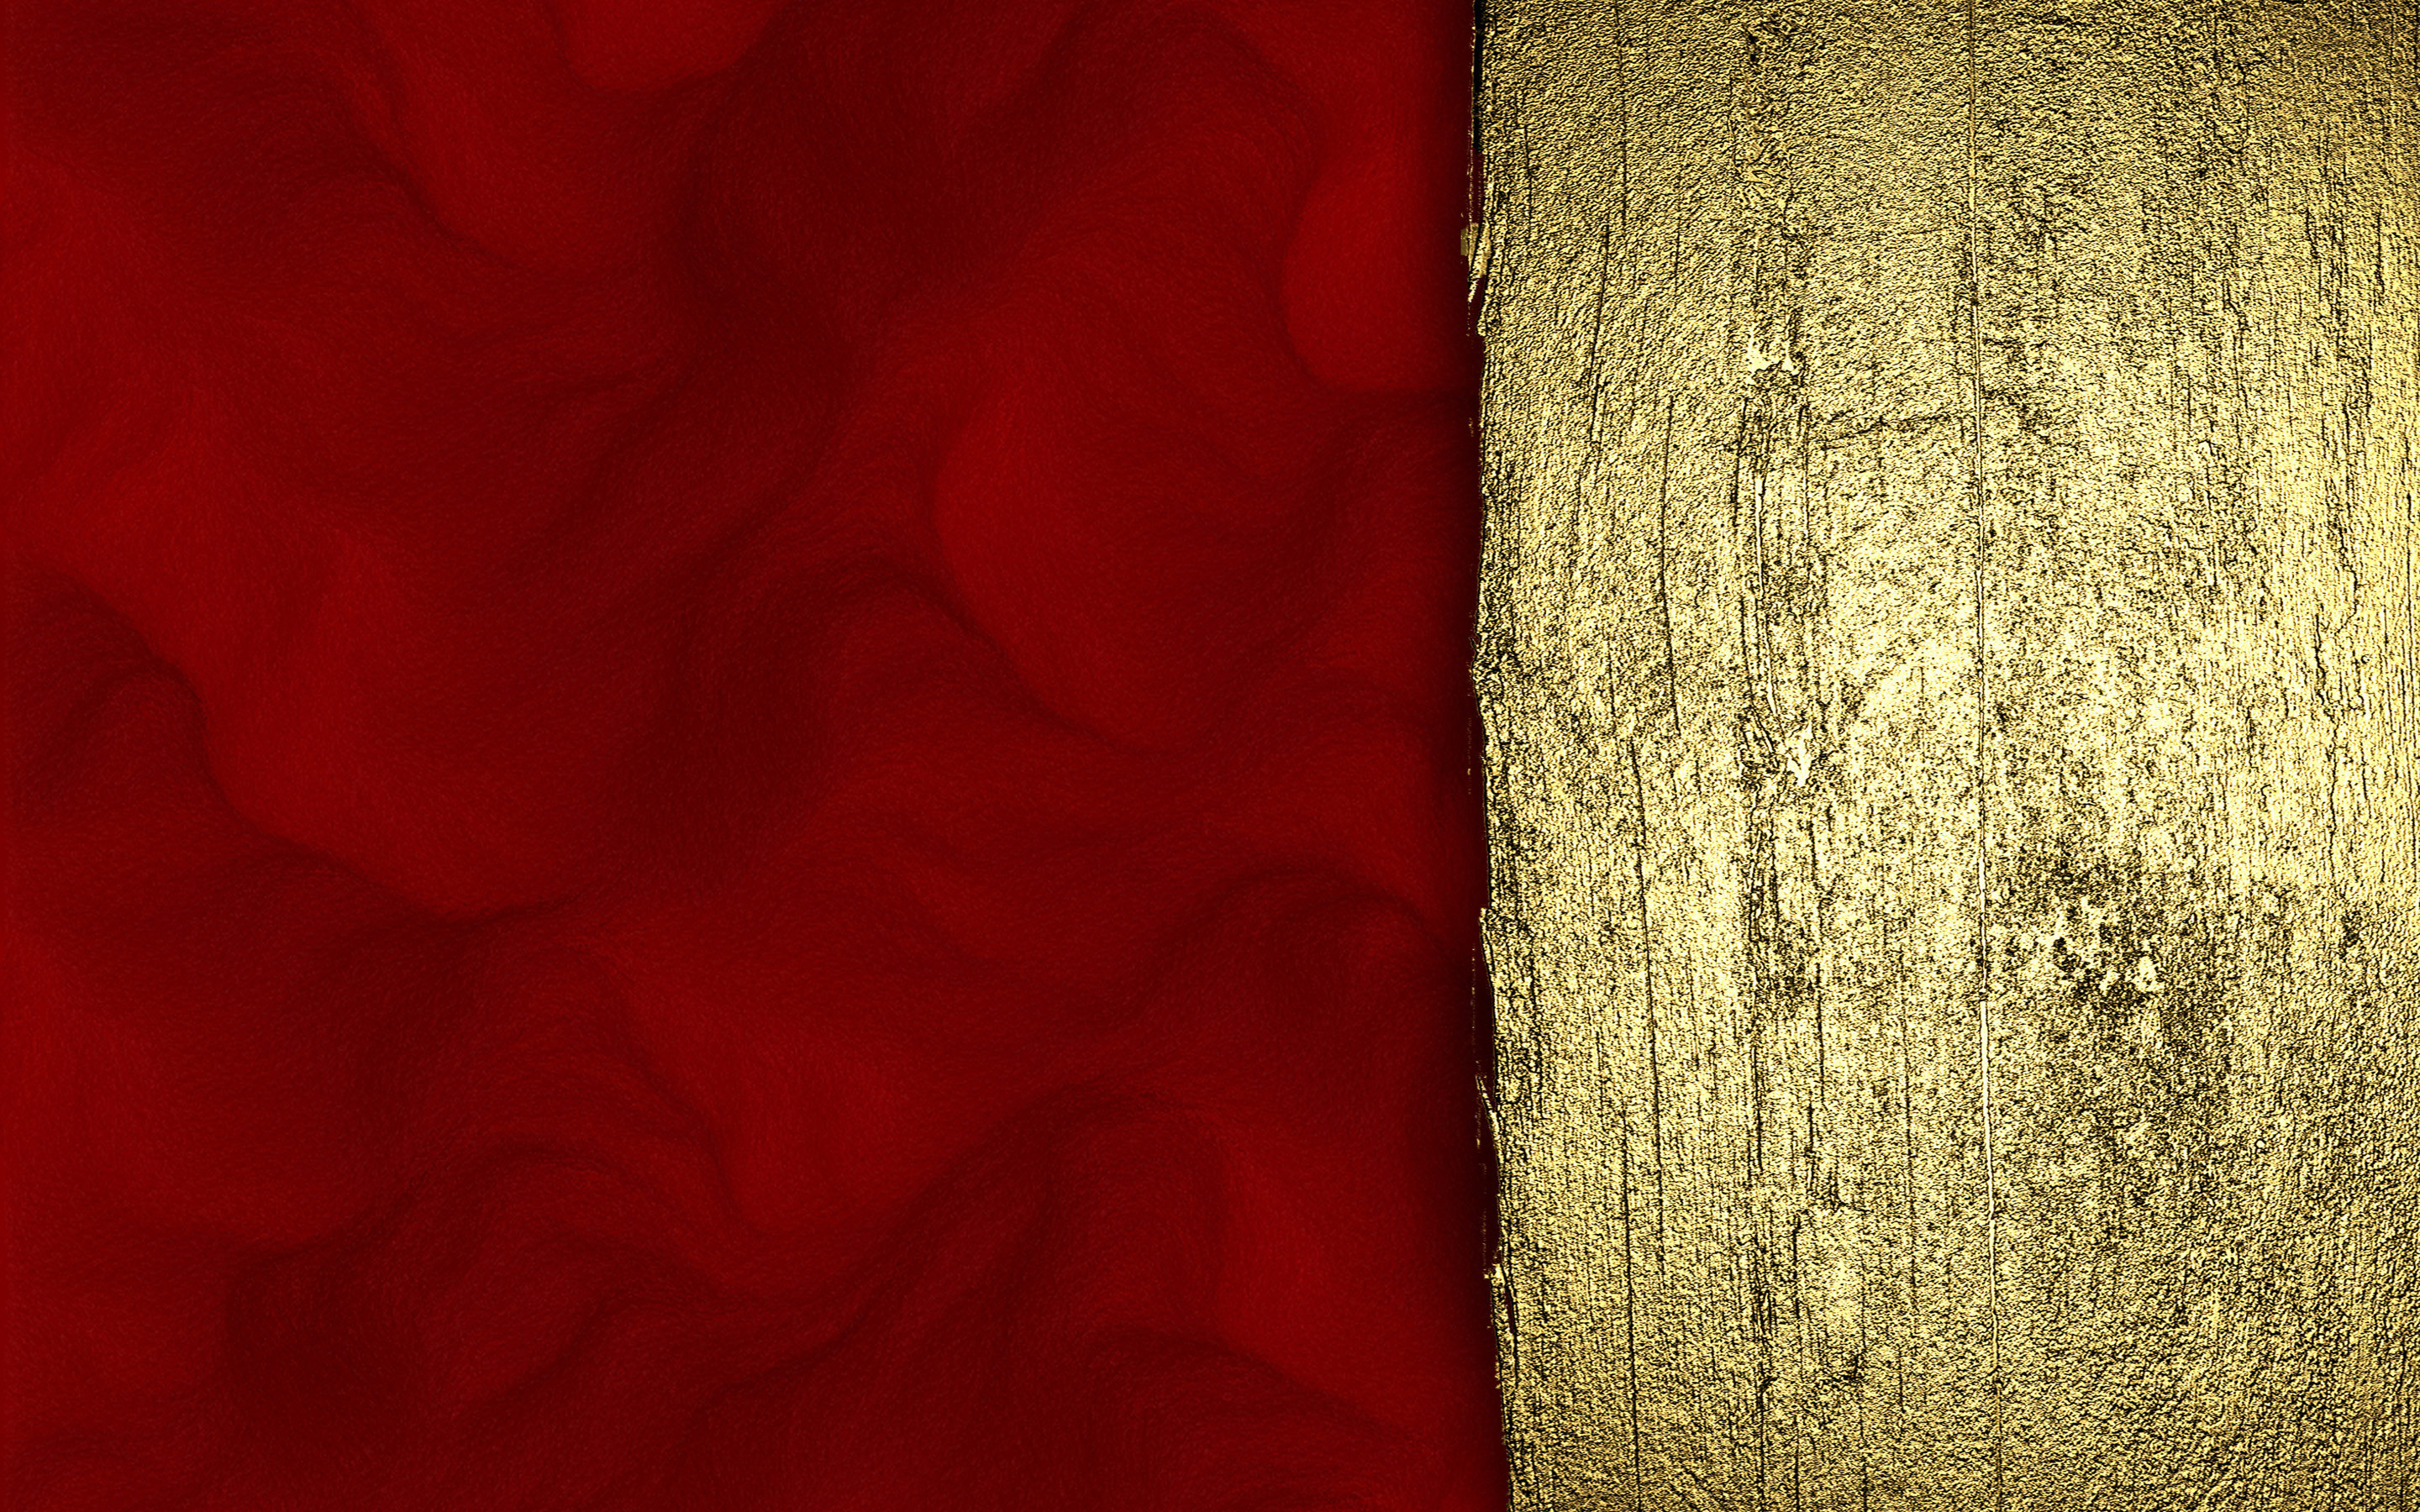 red and gold background images hd red and gold b